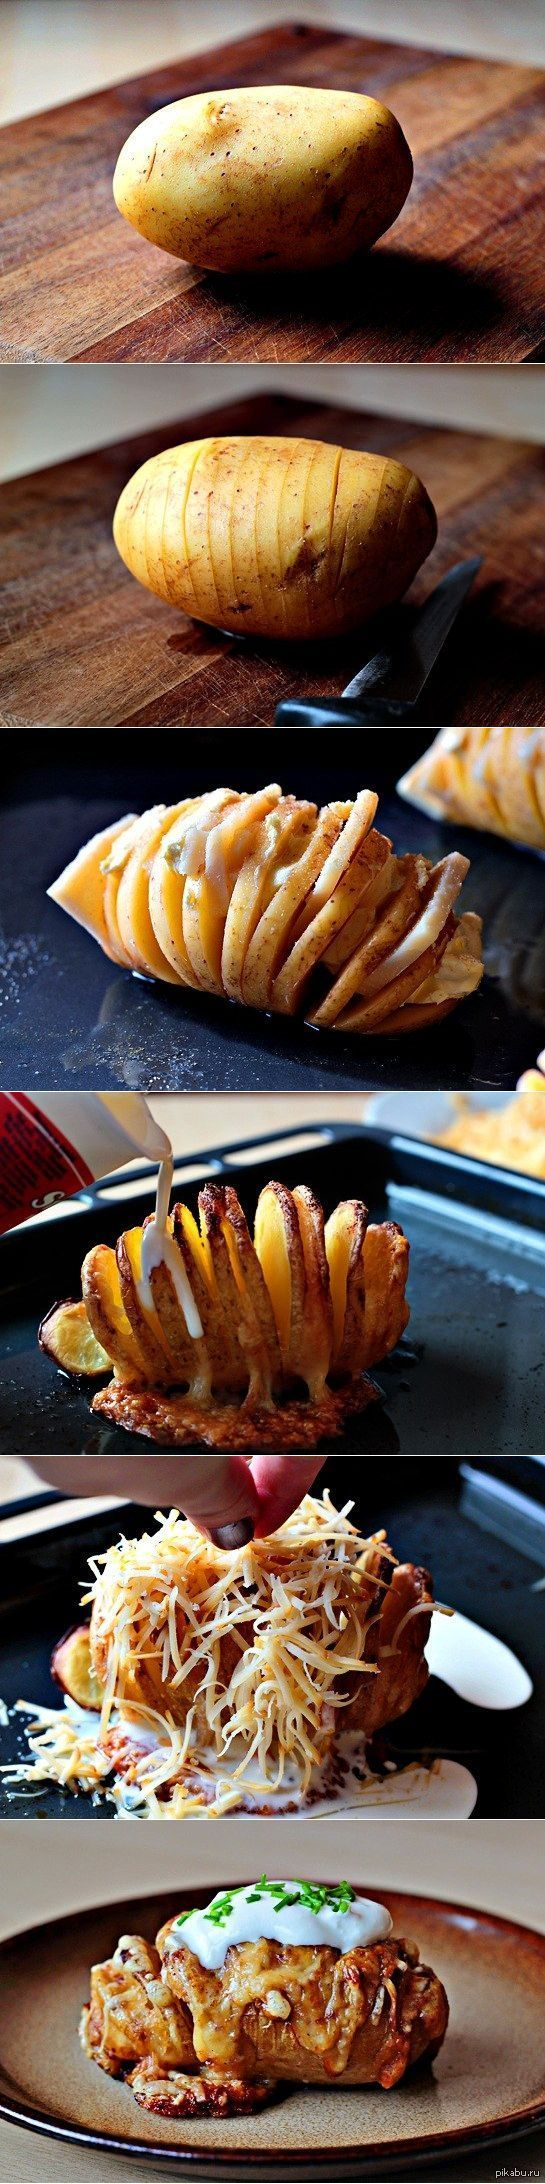 Perfect baked potato.